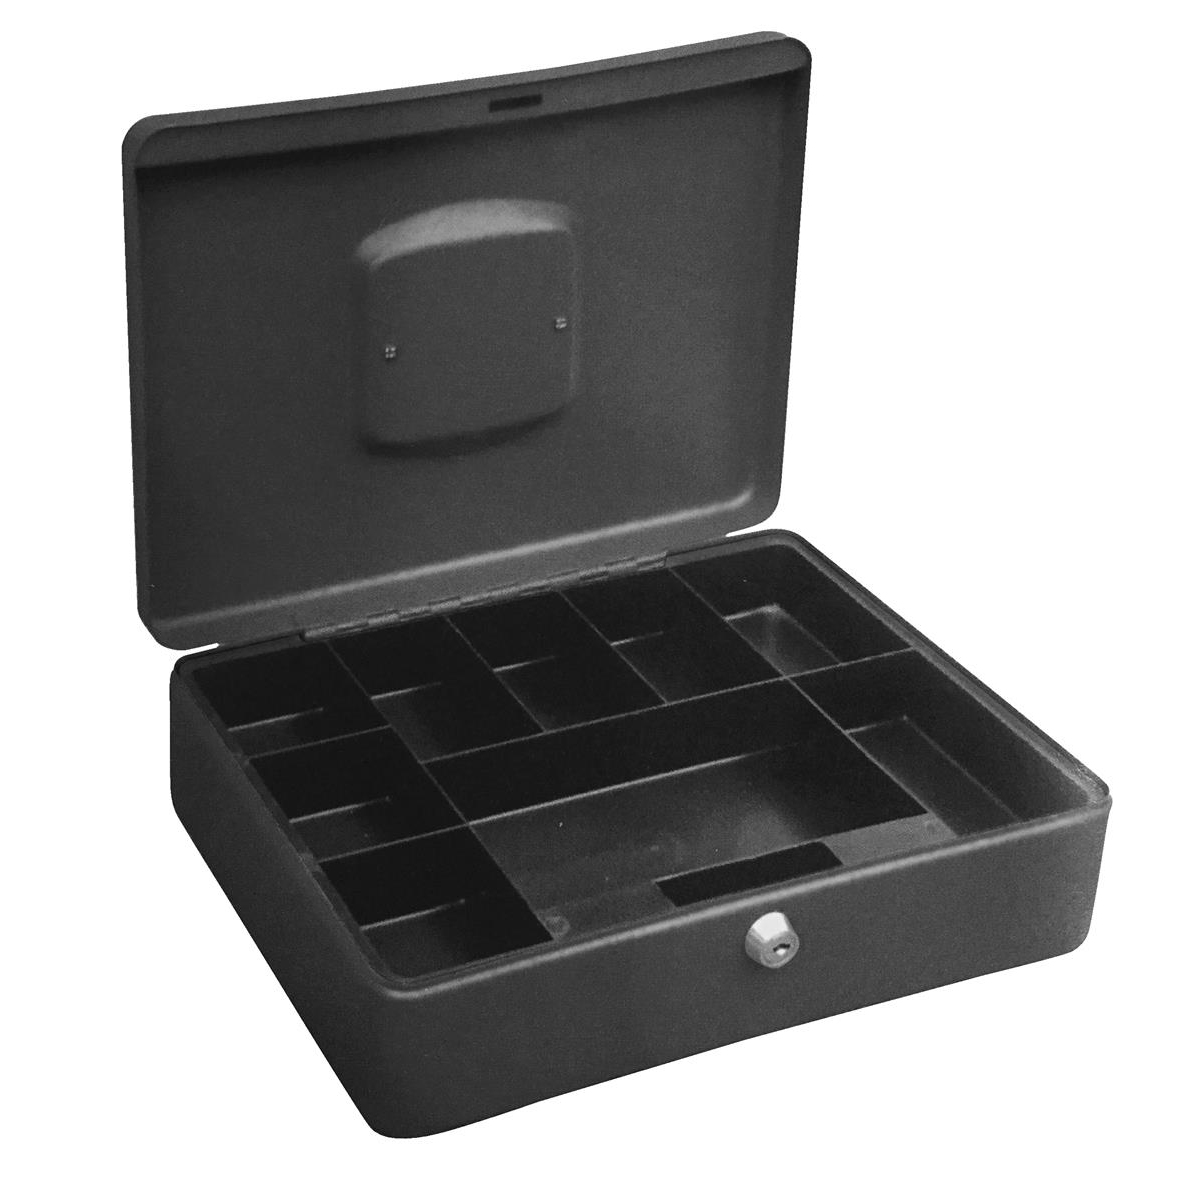 Cash 5 Star Facilities High Capacity Cash Box 8 Part Coin Tray 1 Part Note Section W300xD230xH90mm Titanium